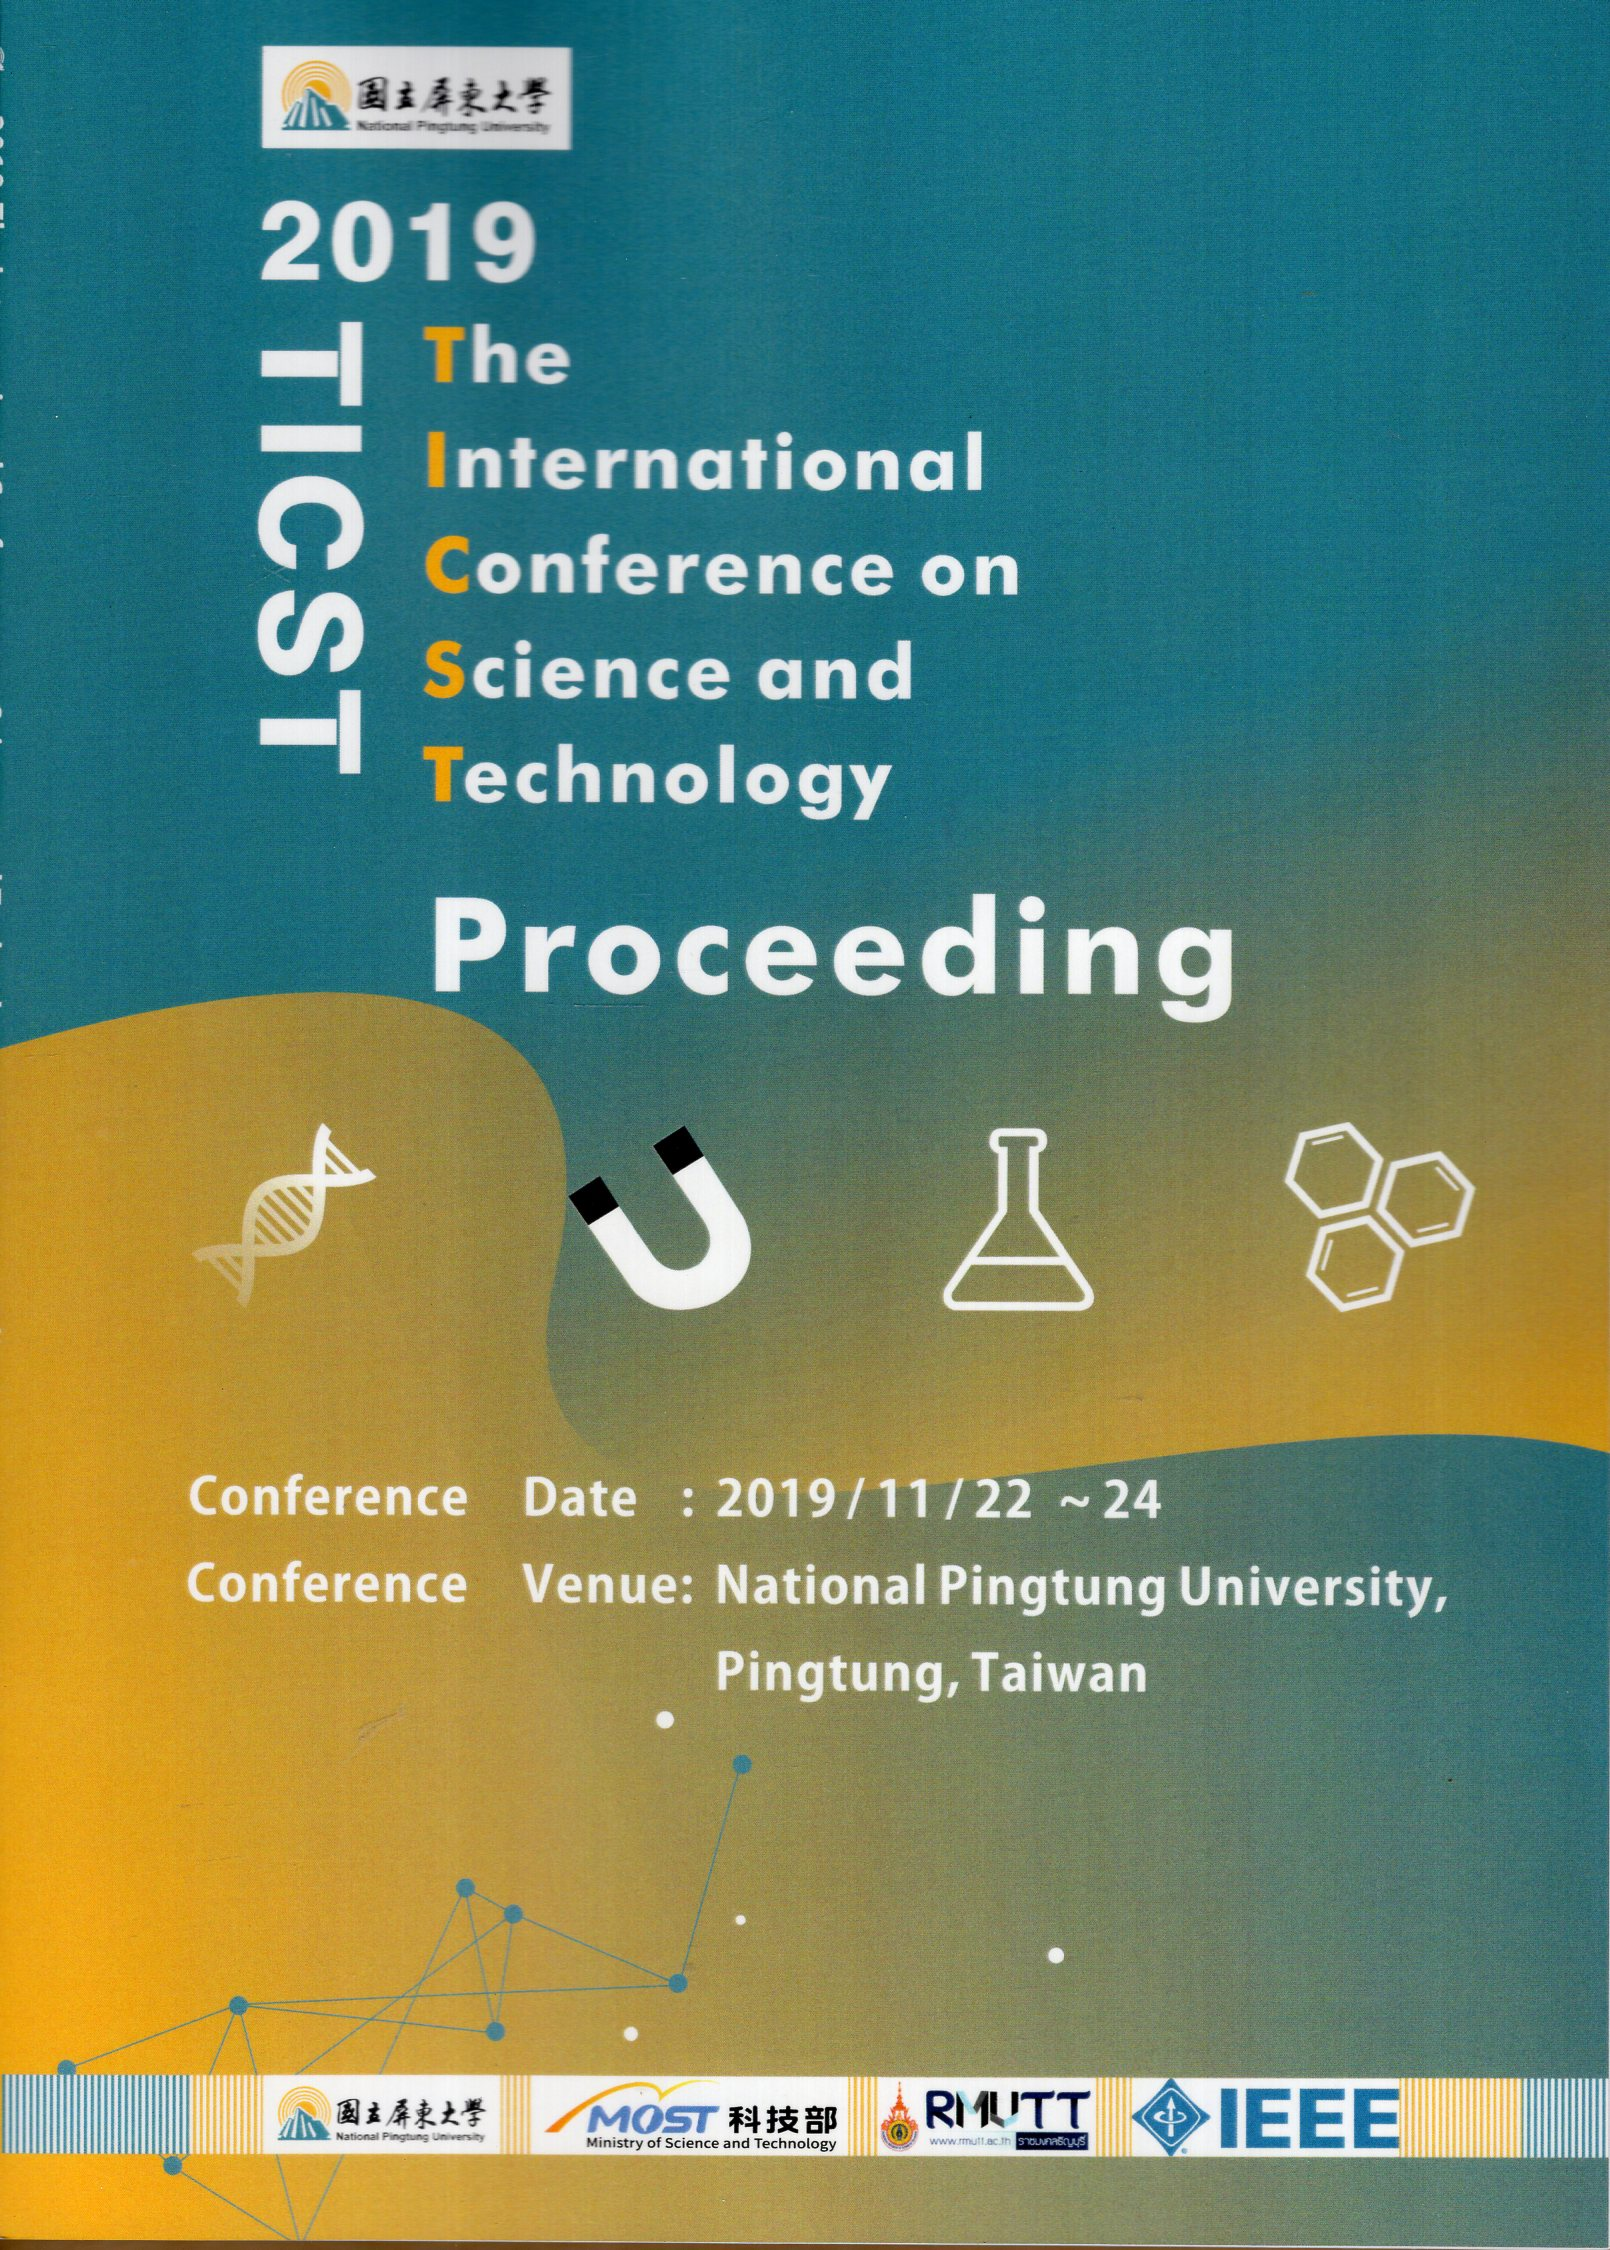 2019 The International Conference on Science and Technology Proceeding